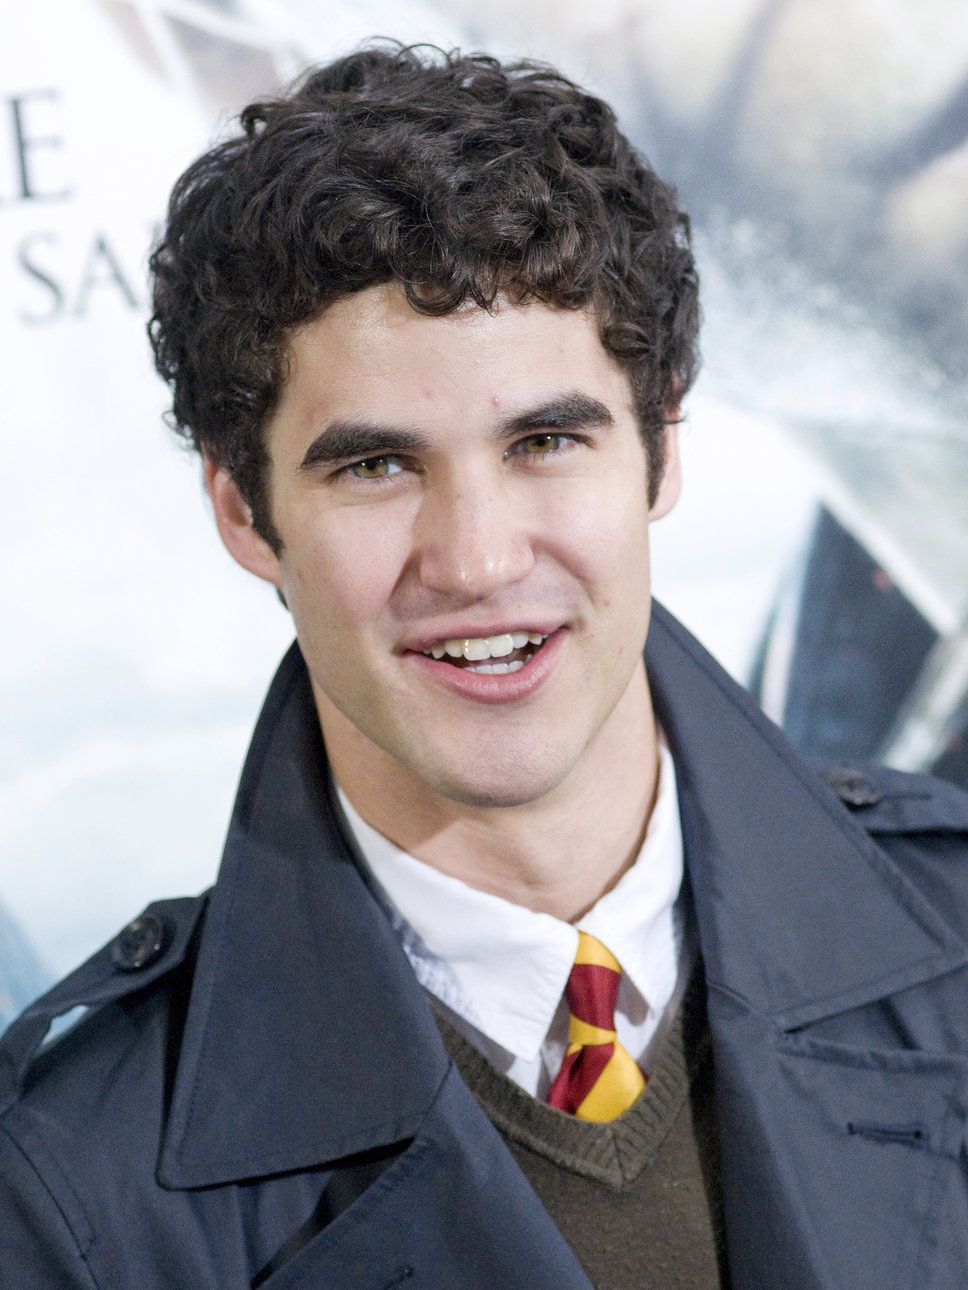 This man... Darren Criss, you have completely ruined me for other men and I'm completely ok with it.